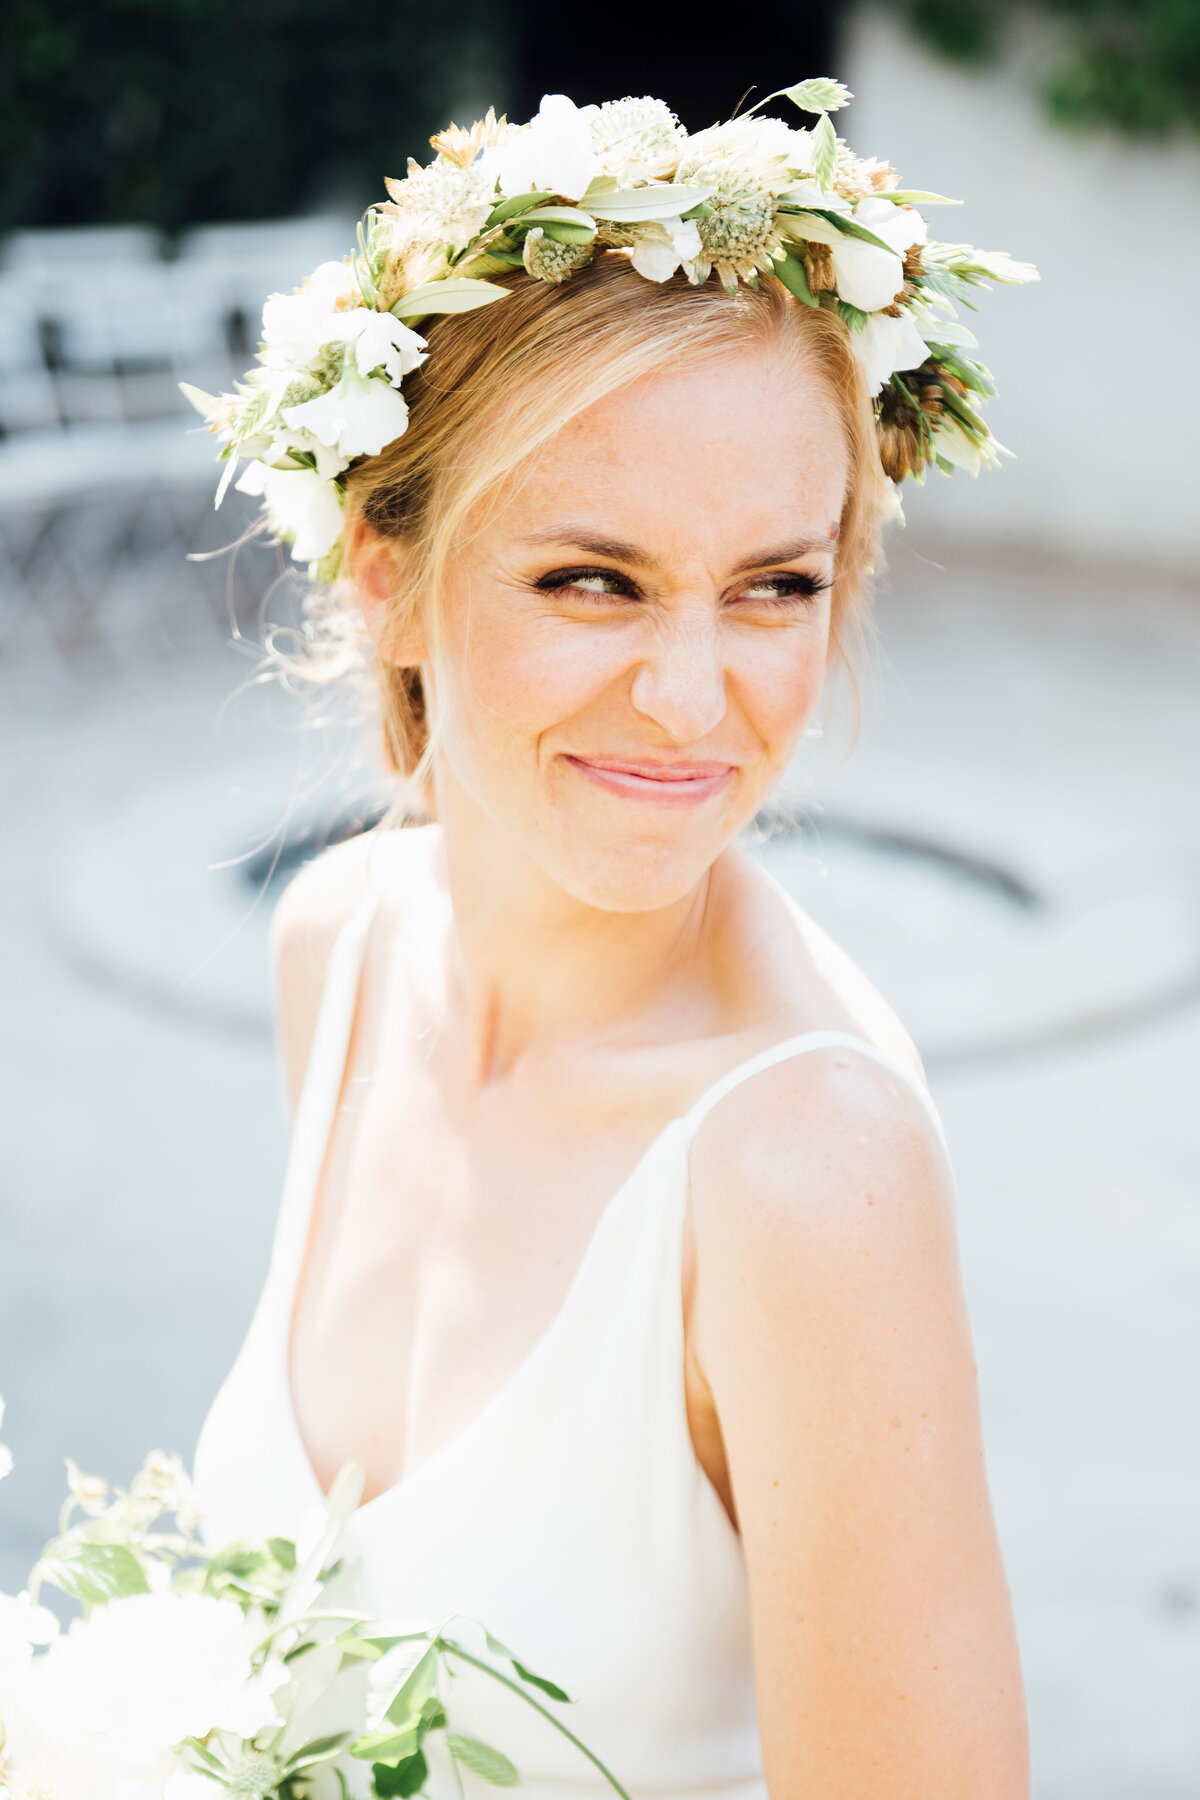 Trine_Juel_hair_and_makeupartist_wedding_franceWedding_FR_132